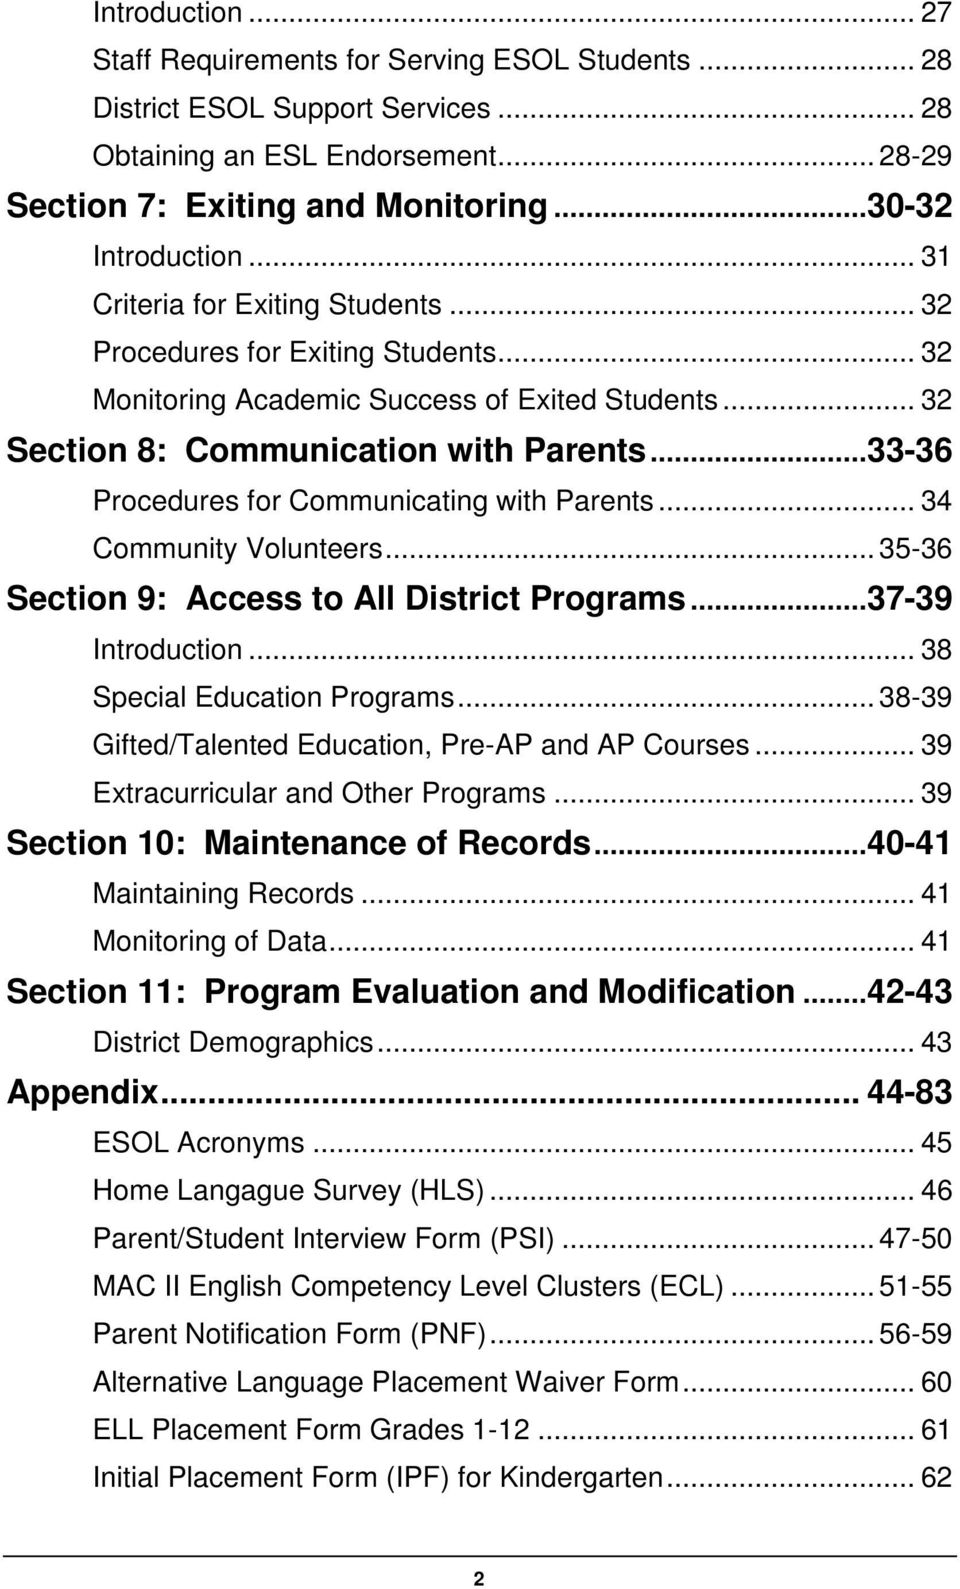 ..33-36 Procedures for Communicating with Parents... 34 Community Volunteers... 35-36 Section 9: Access to All District Programs...37-39 Introduction... 38 Special Education Programs.